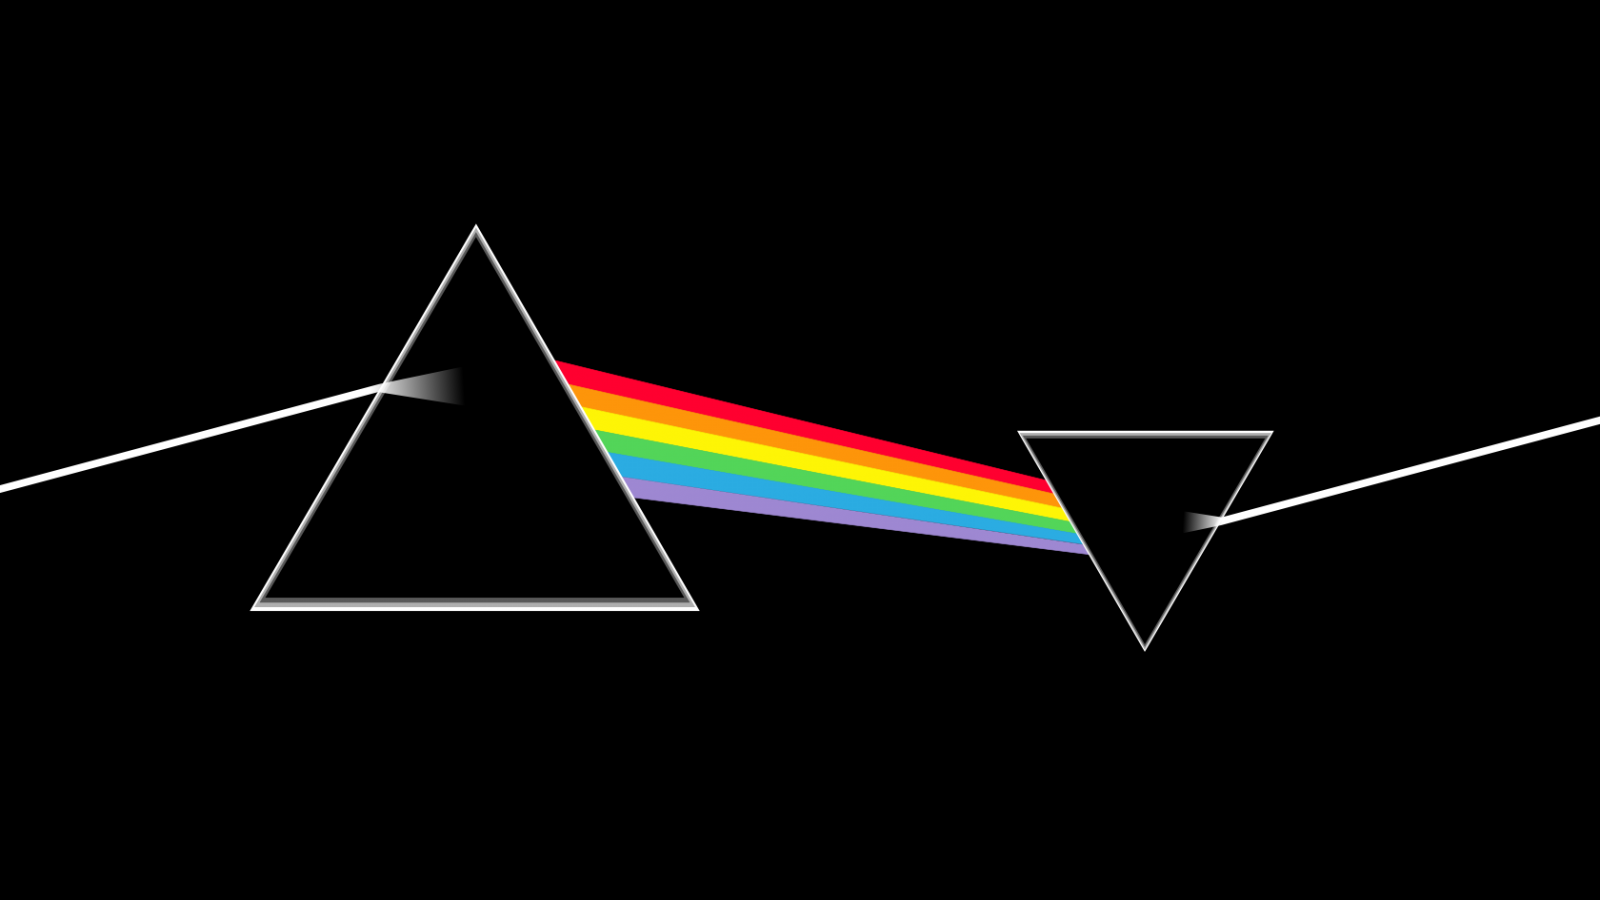 Free Download Pink Floyd Dark Side Of The Moon Drawing Hd